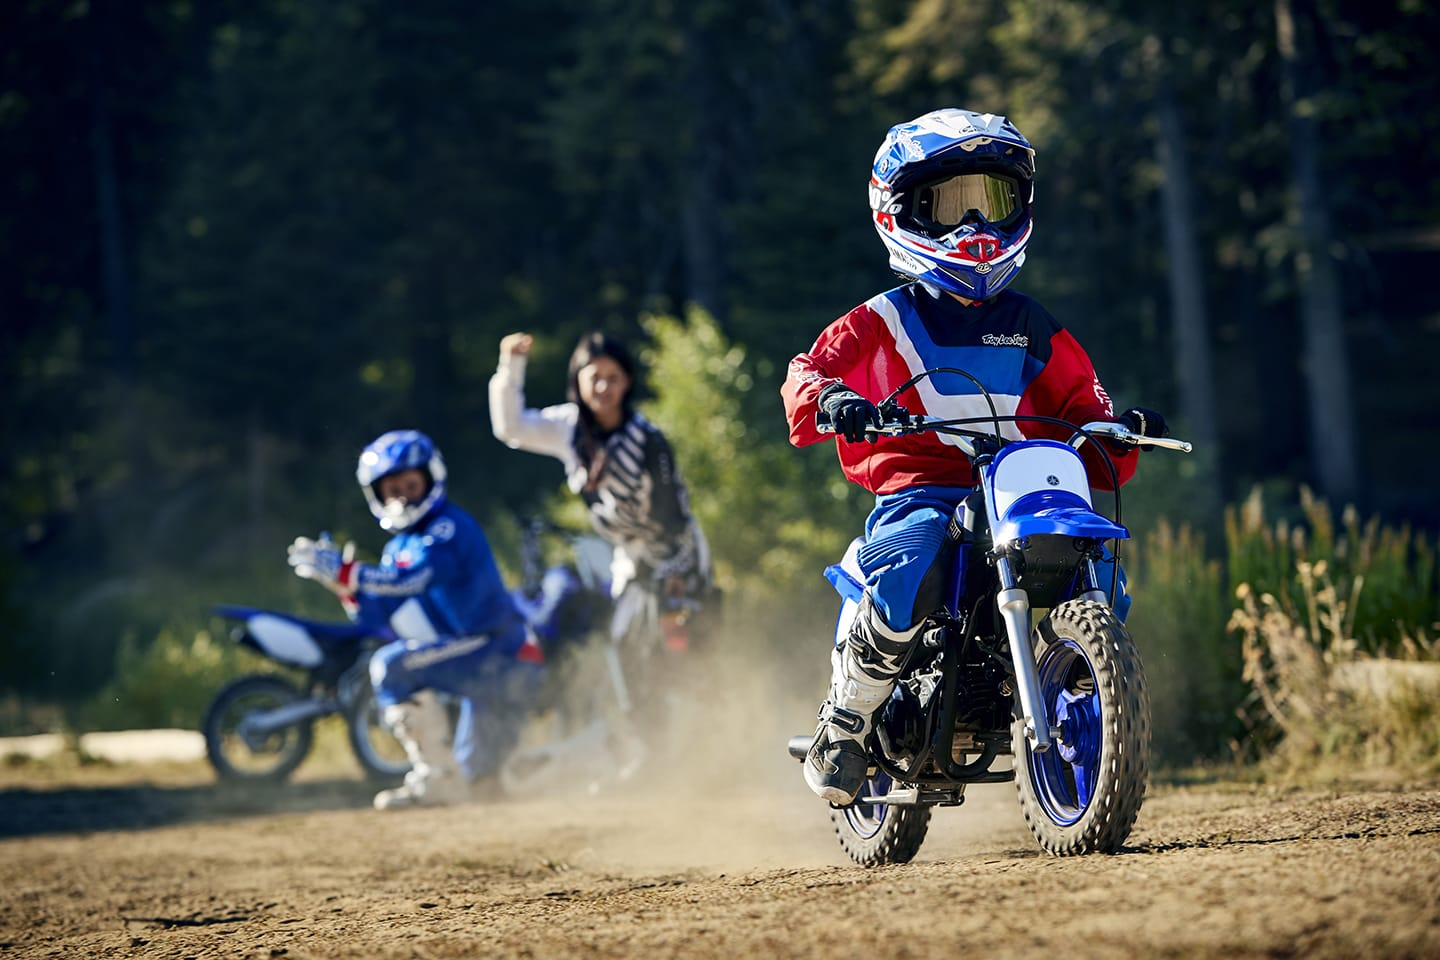 2021 PW50 action